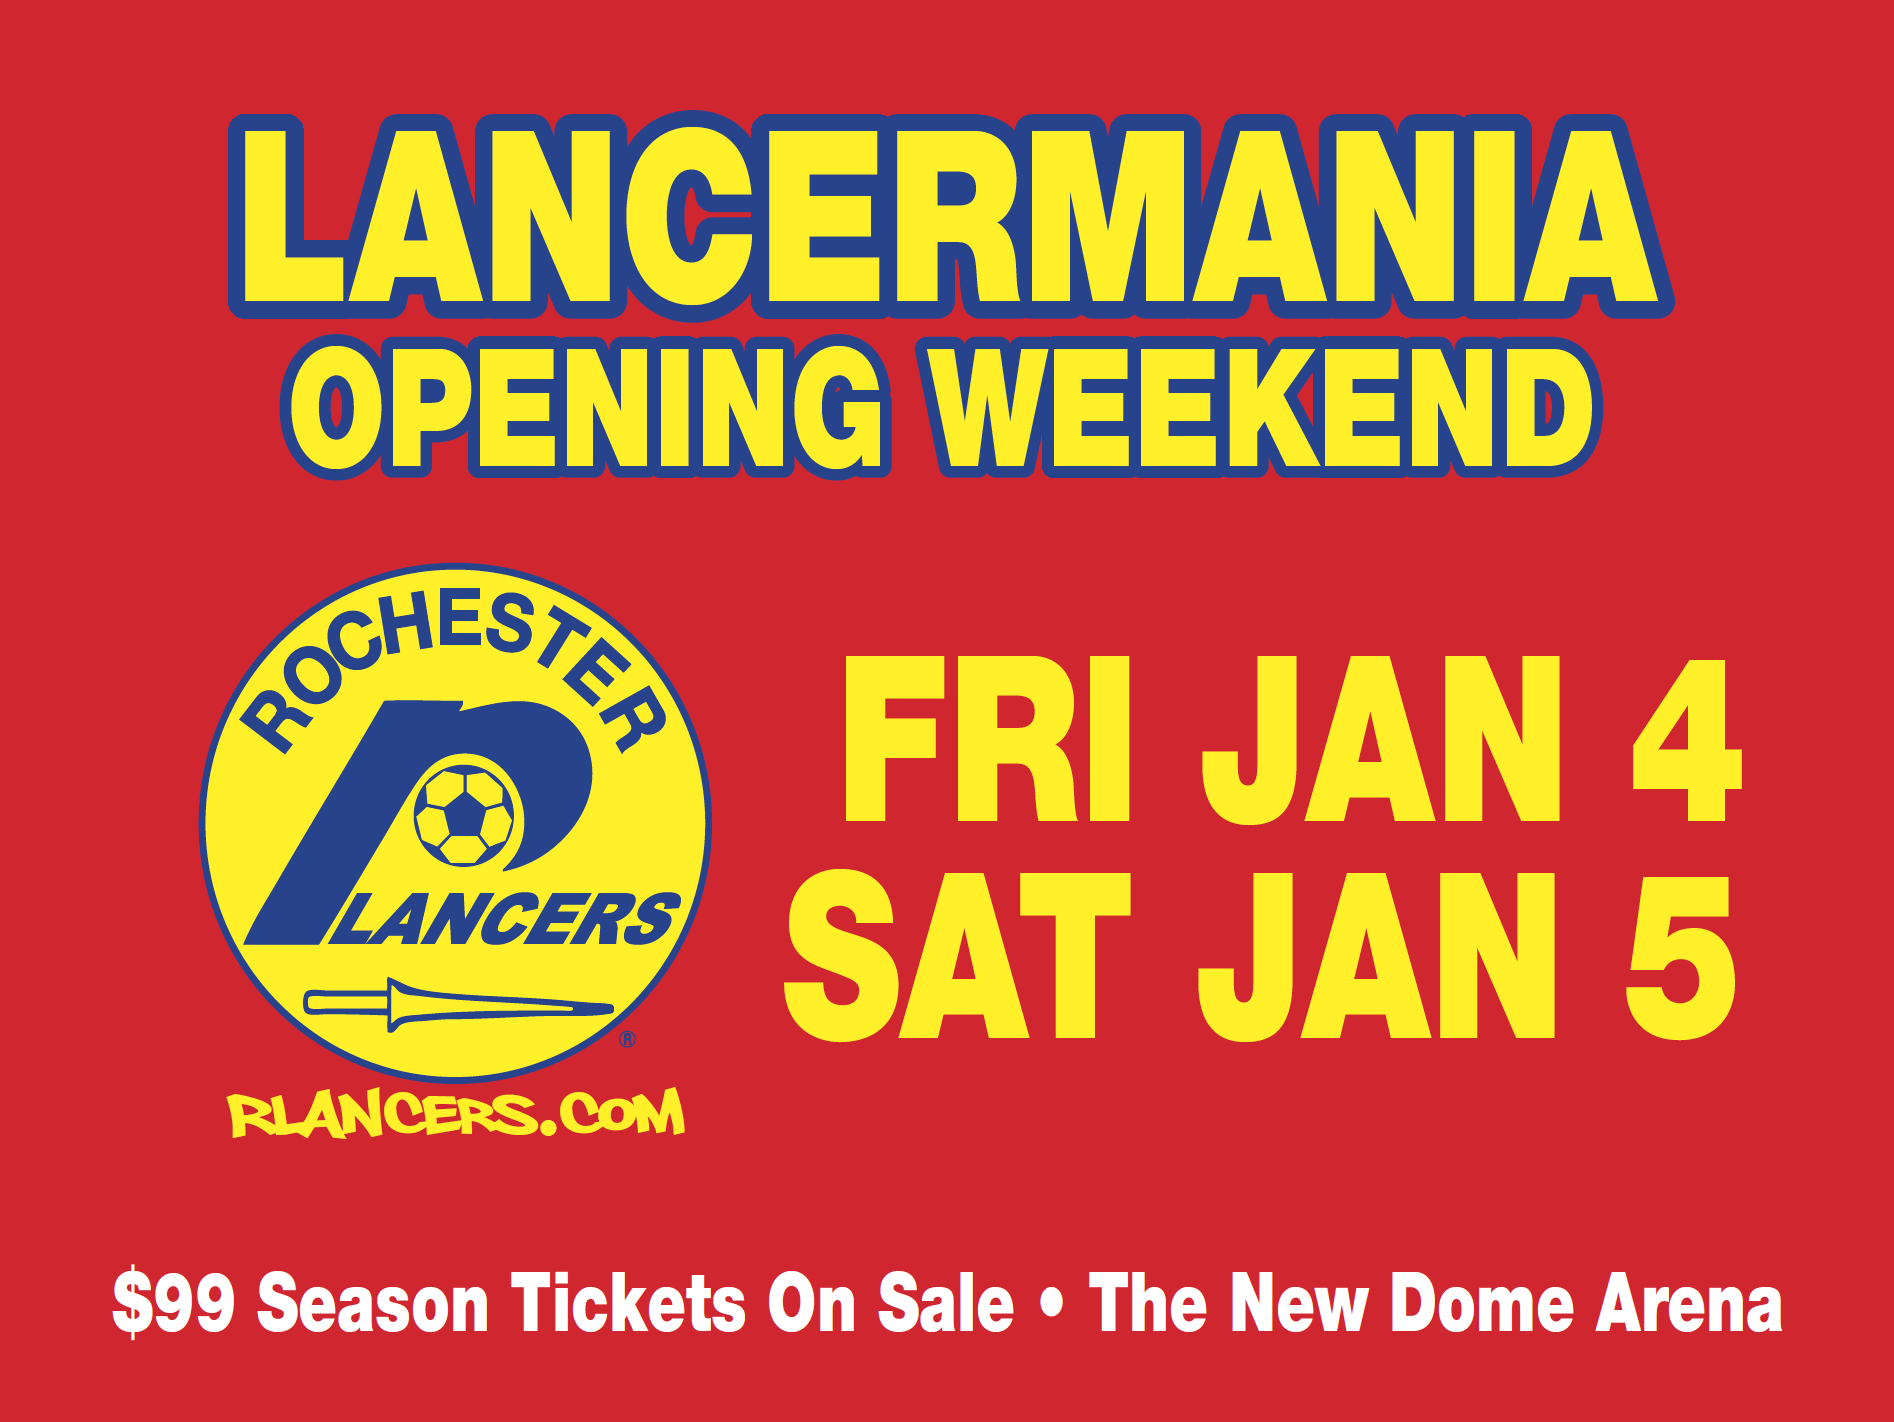 LancerMania Opening Weekend January 4 & 5